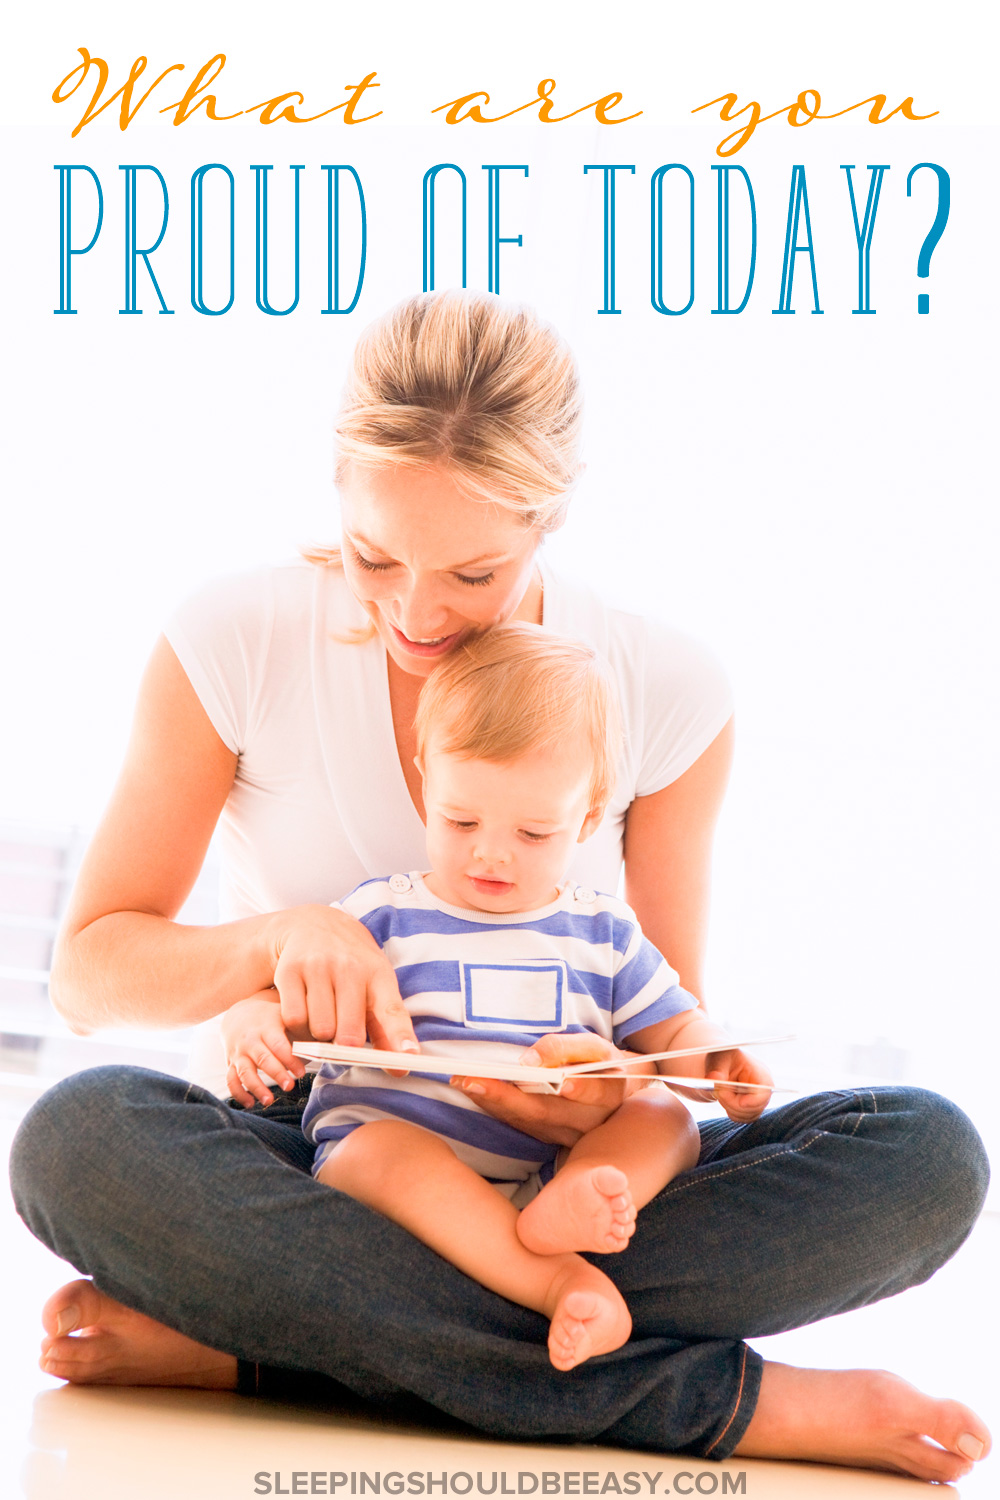 What are you proud of today? When parenthood feels rough, remind yourself of all you've accomplished, big and small.